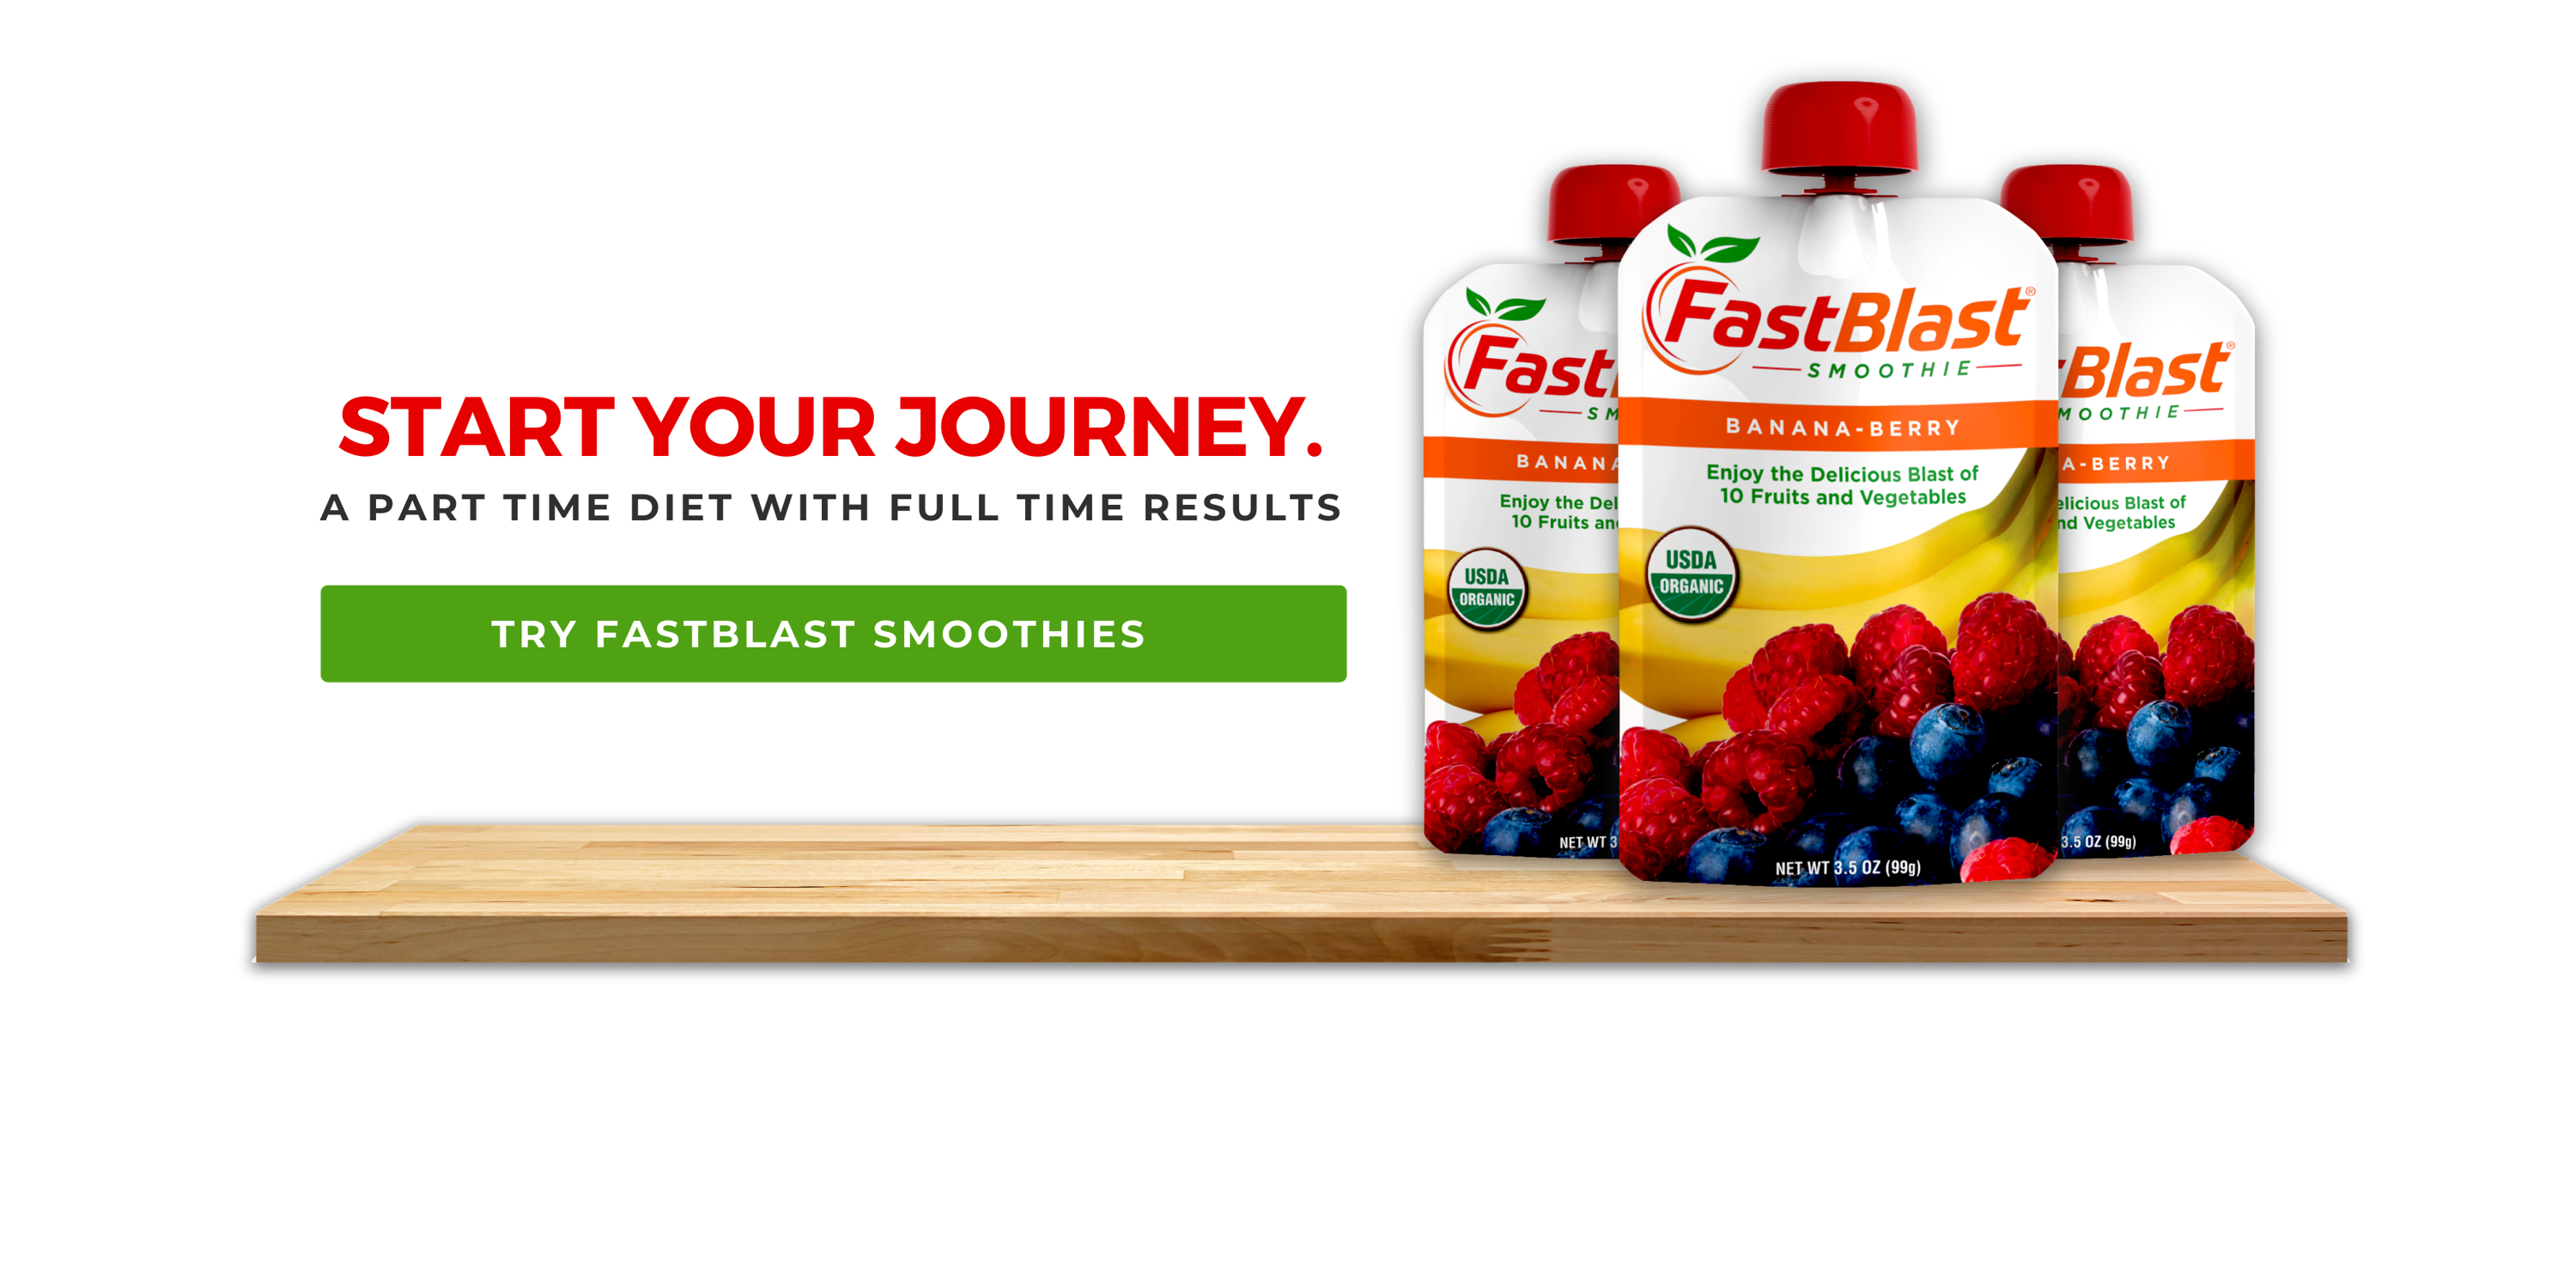 Fastblast smoothies lined up